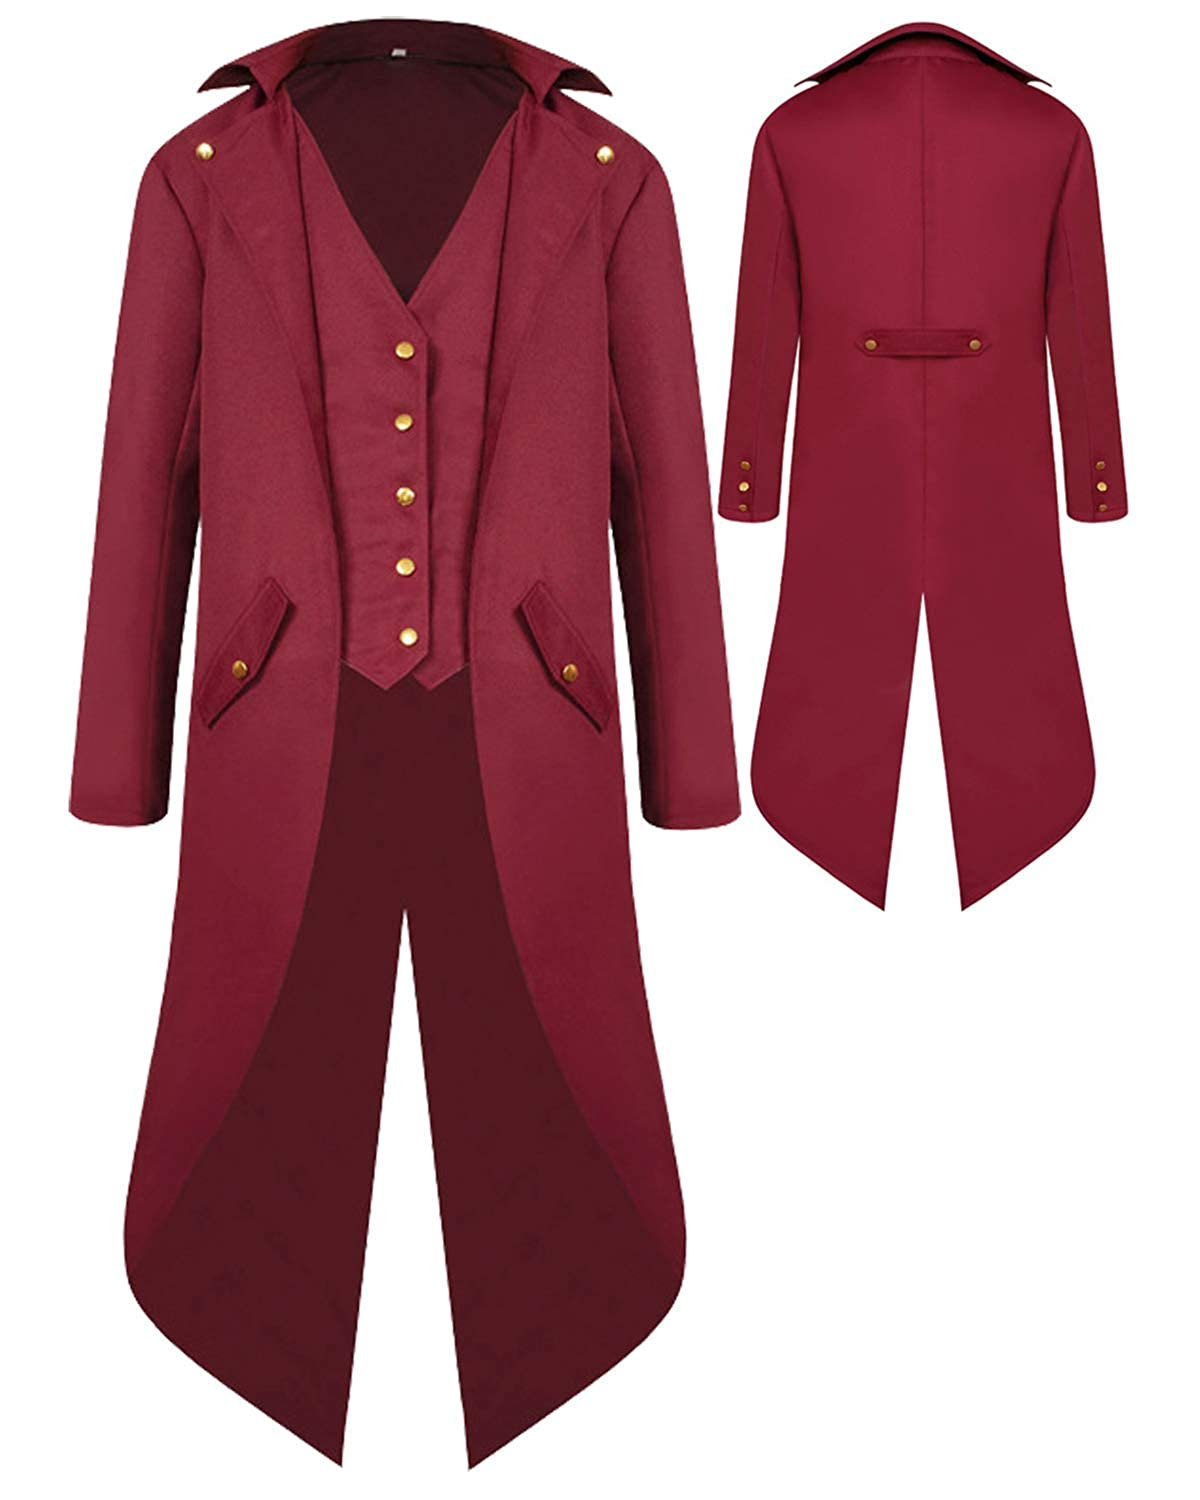 SIAEAMRG Renaissance Steampunk Tailcoat Halloween Costumes for Boys Medieval Pirate Vampire Victorian Jacket Frock Coat Kids